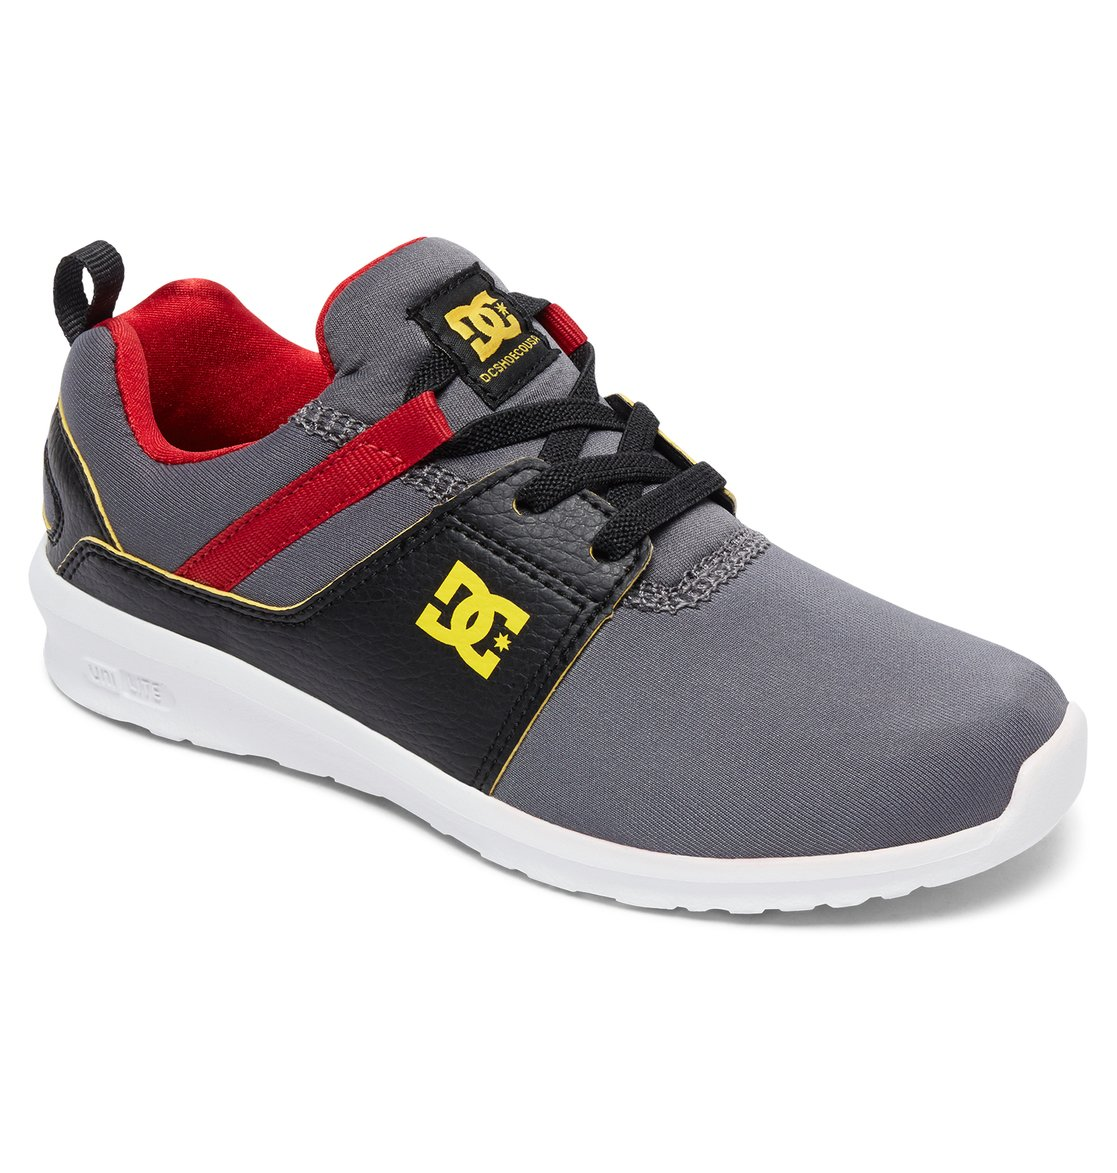 DC-Shoes-Heathrow-SE-Chaussures-pour-Garcon-ADBS700049